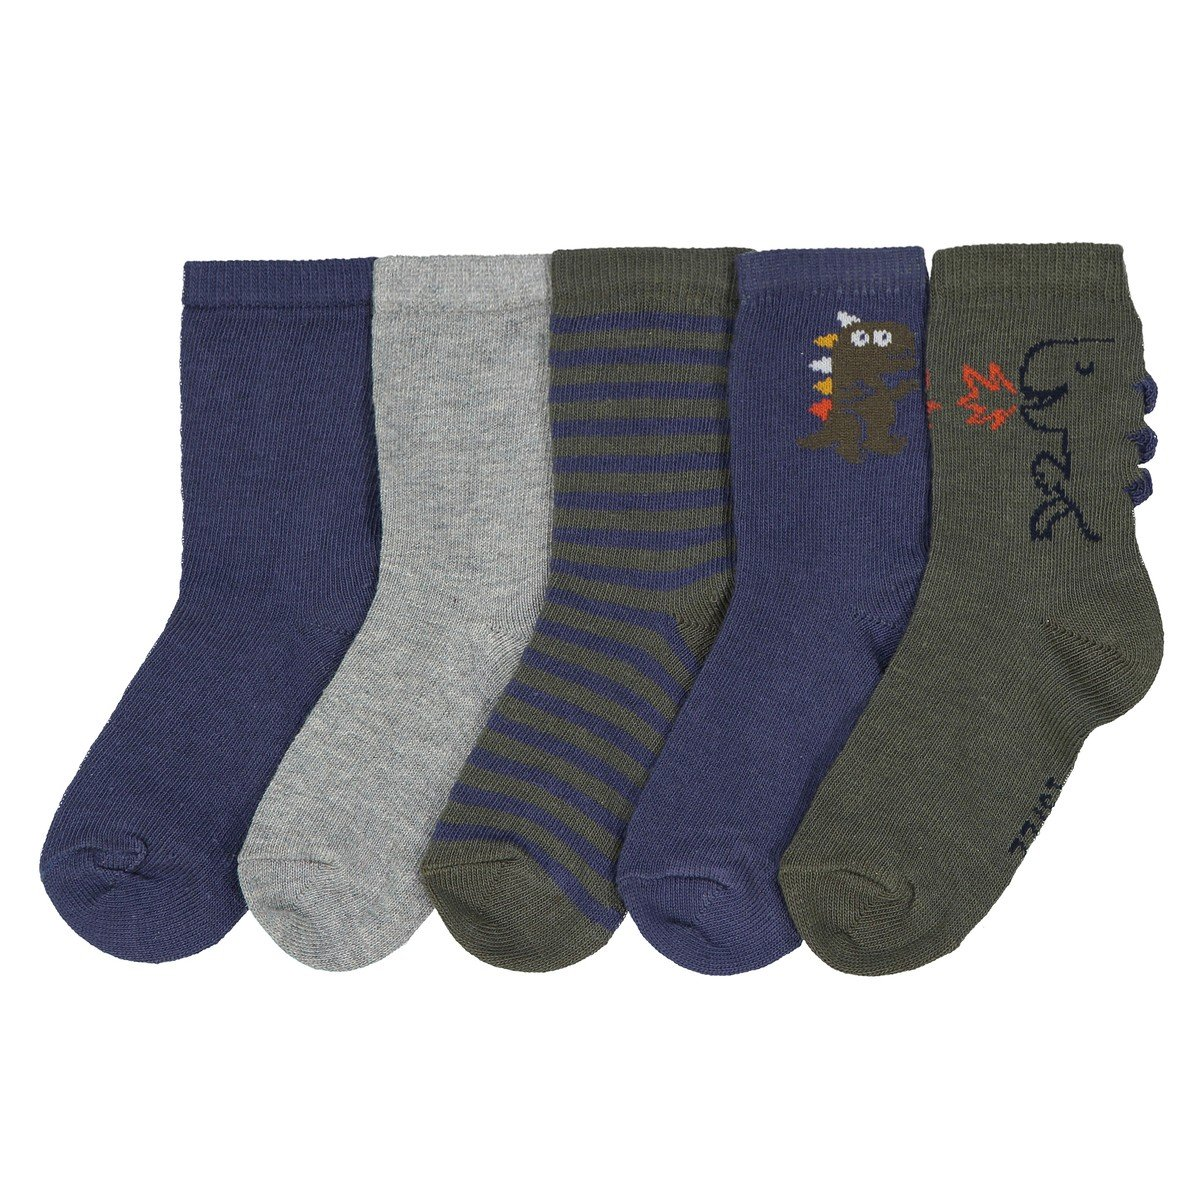 La Redoute Collections Big Boys Pack Of 5 Pairs Of Fancy Socks, Sizes 15/18-23/26 Blue Size 23/26 (6 To 8.5)